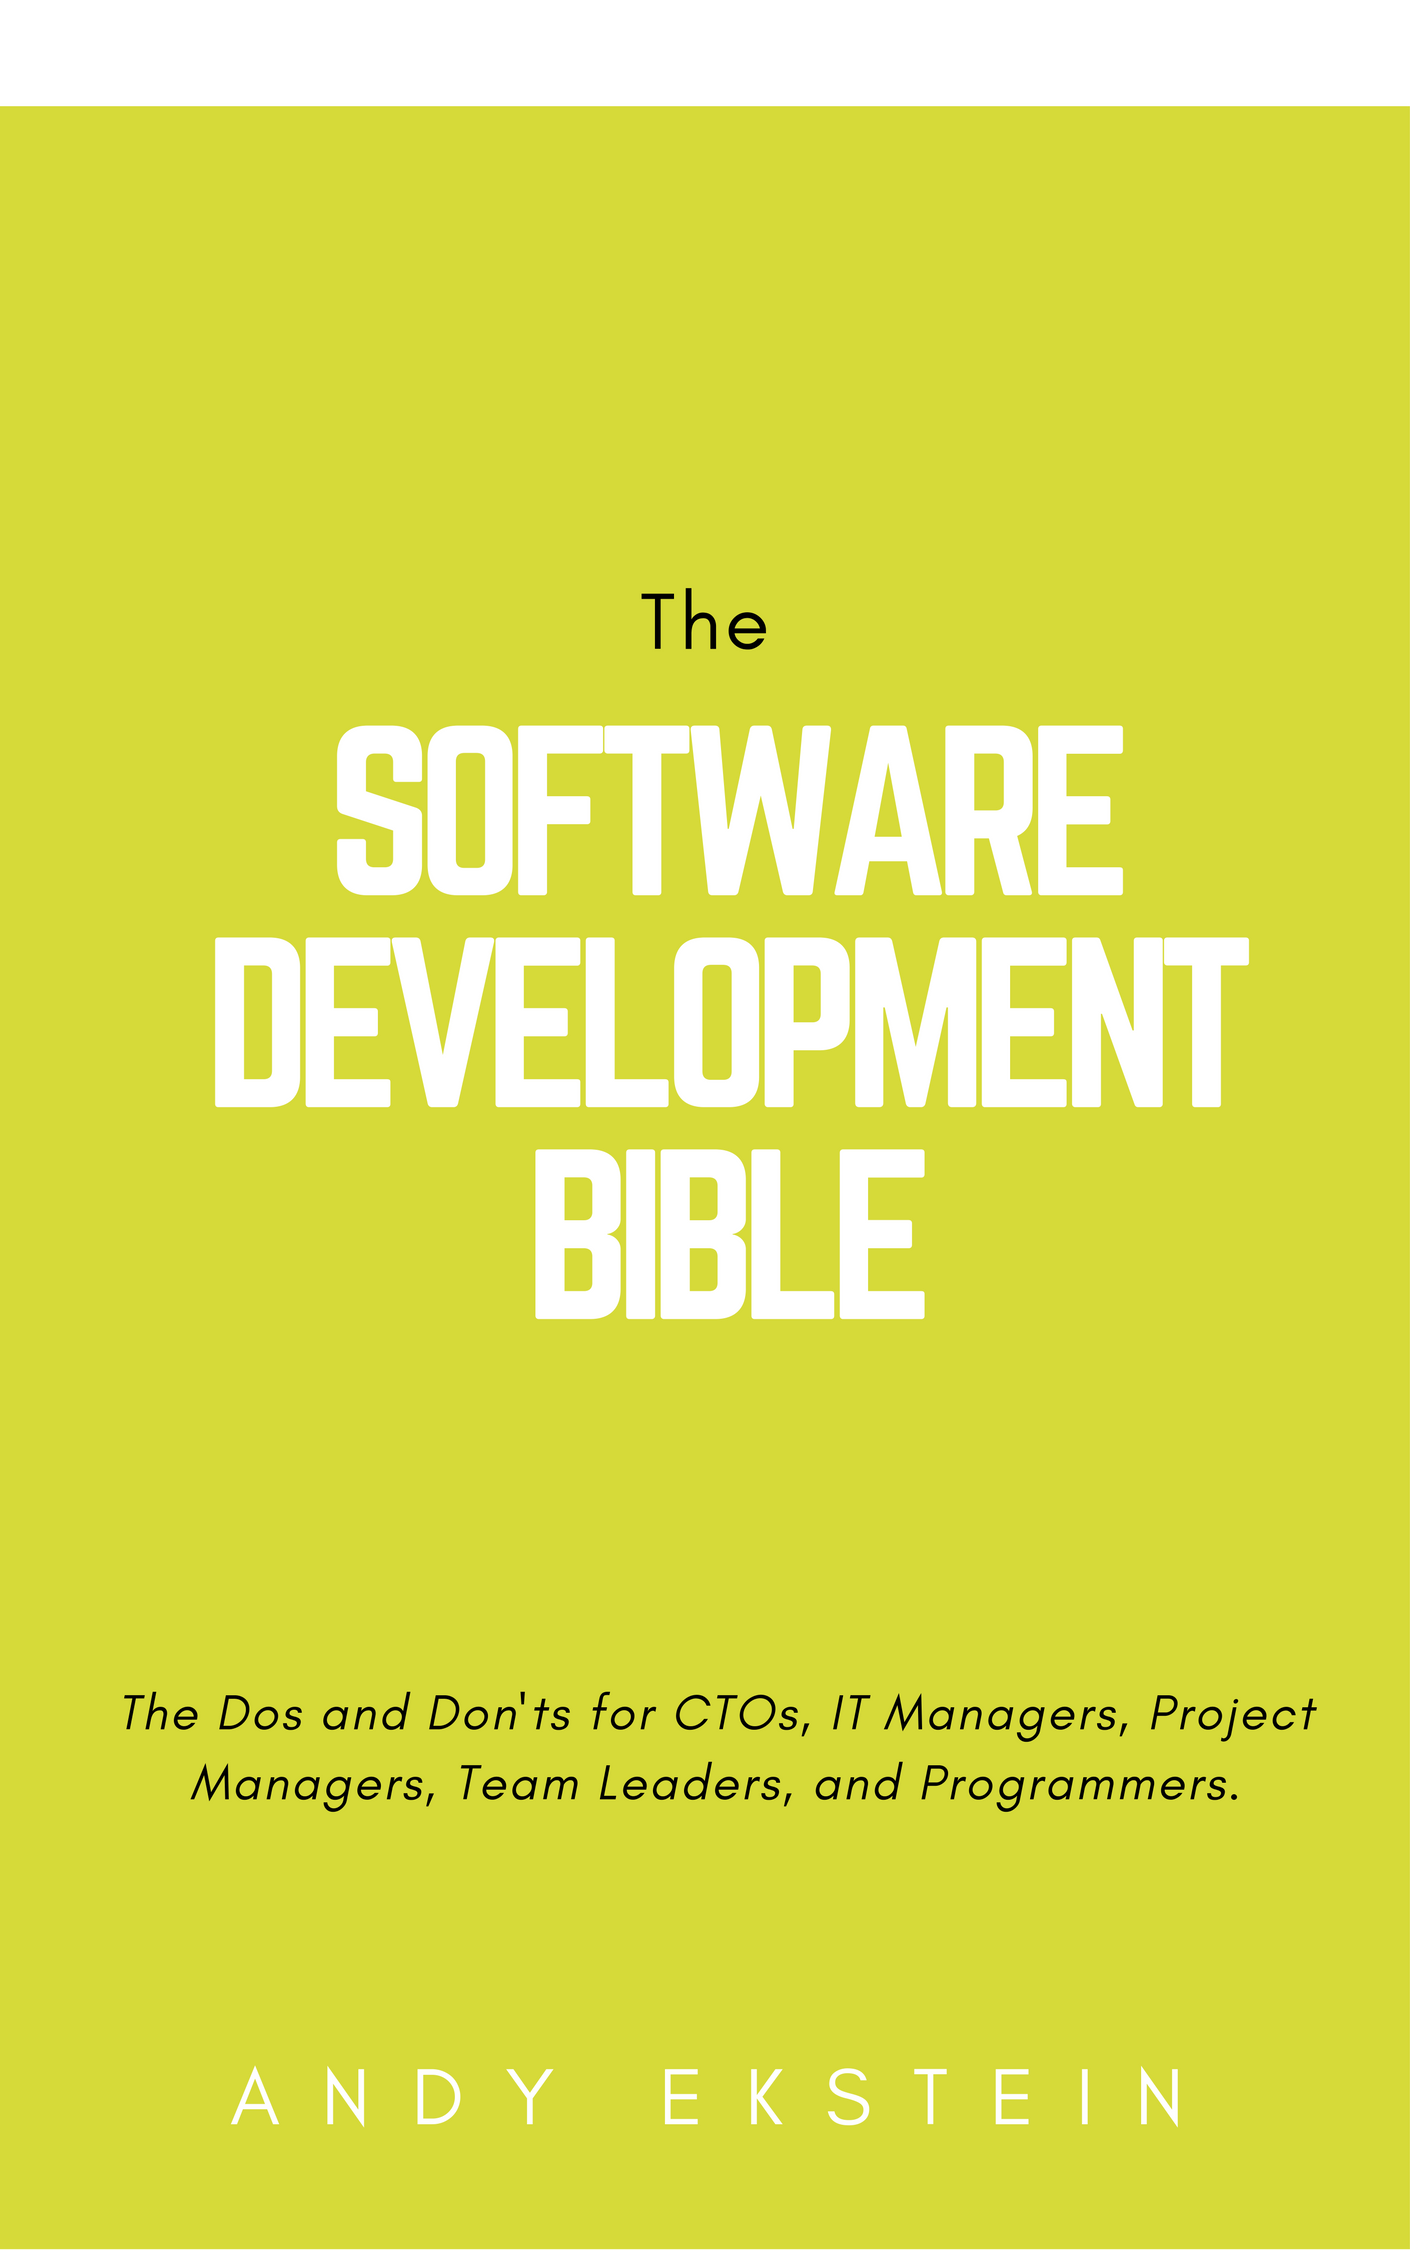 The Software Development Bible